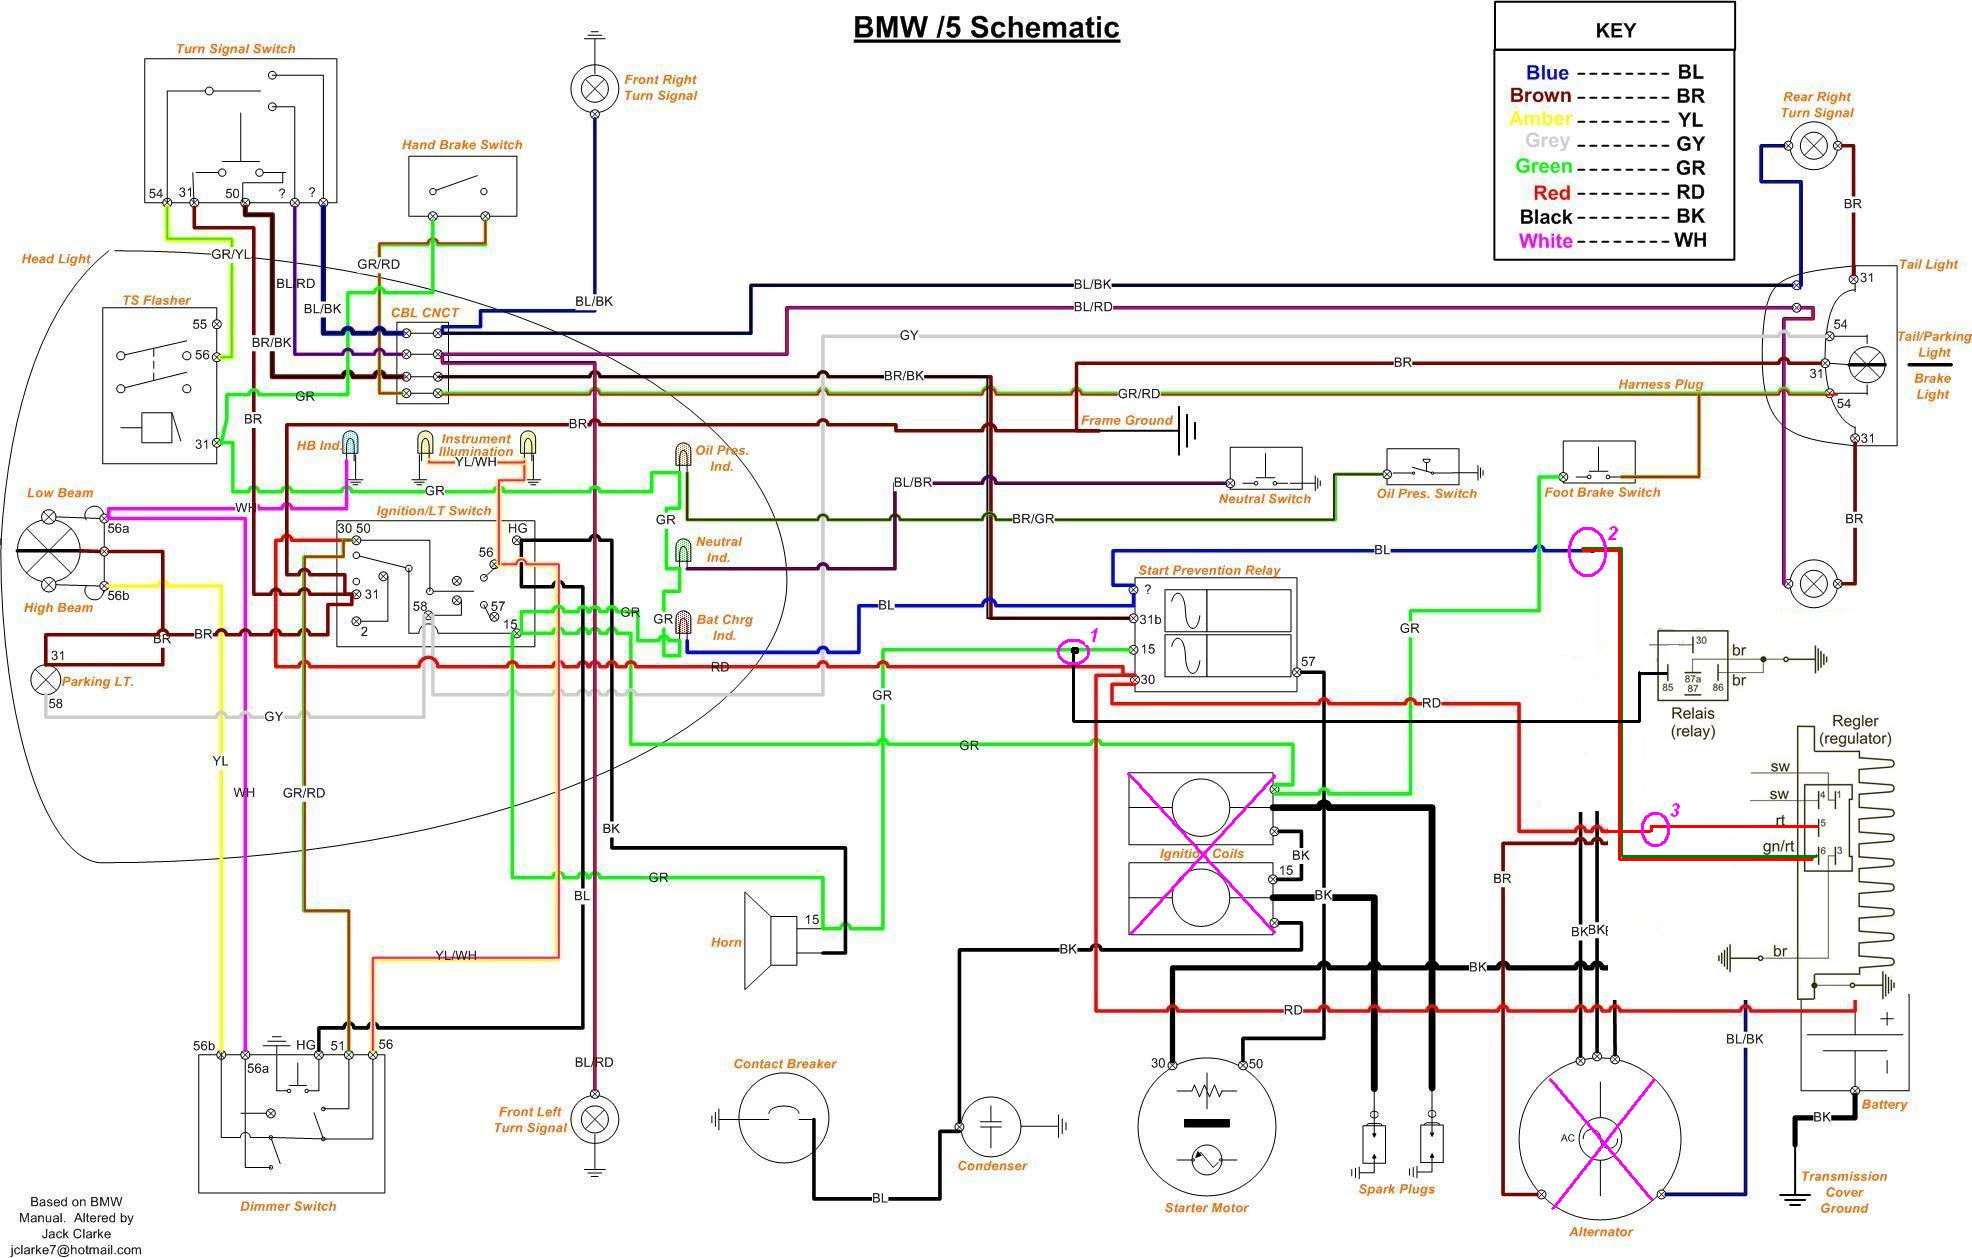 wiring diagram for bmw r75 6 bmw k75 wiring diagram wiring